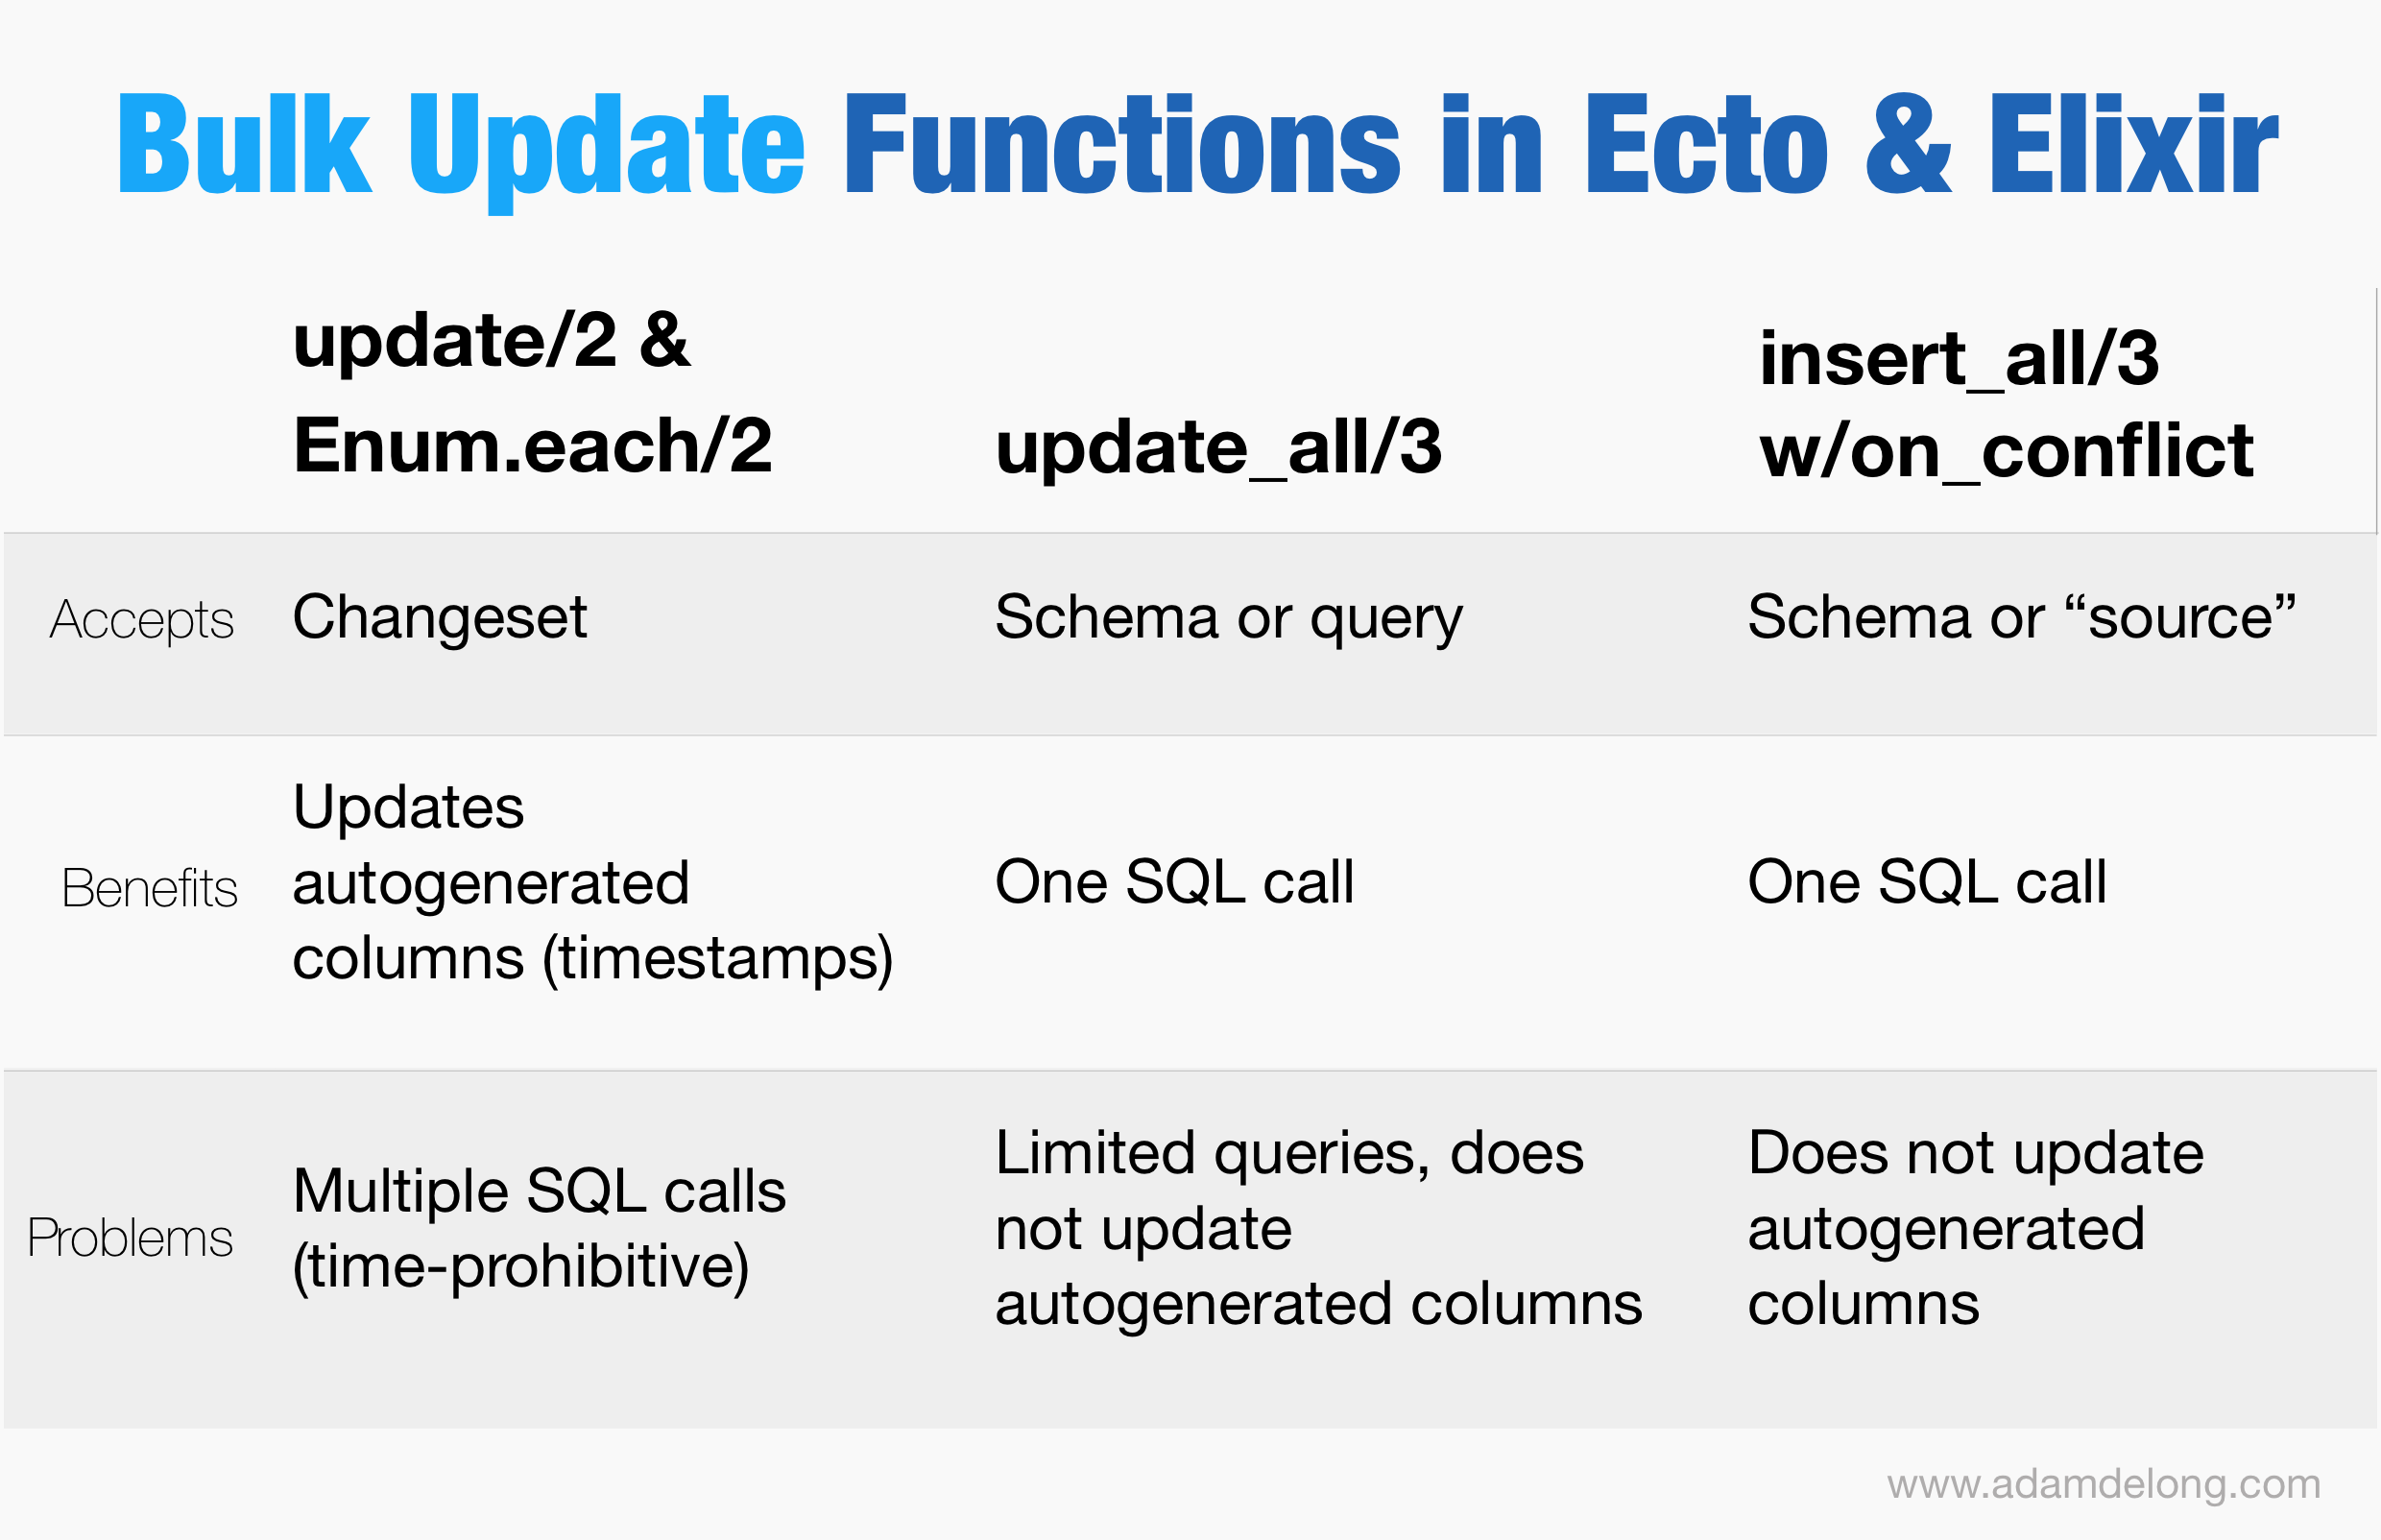 Performing Bulk Updates Using Ecto And Elixir